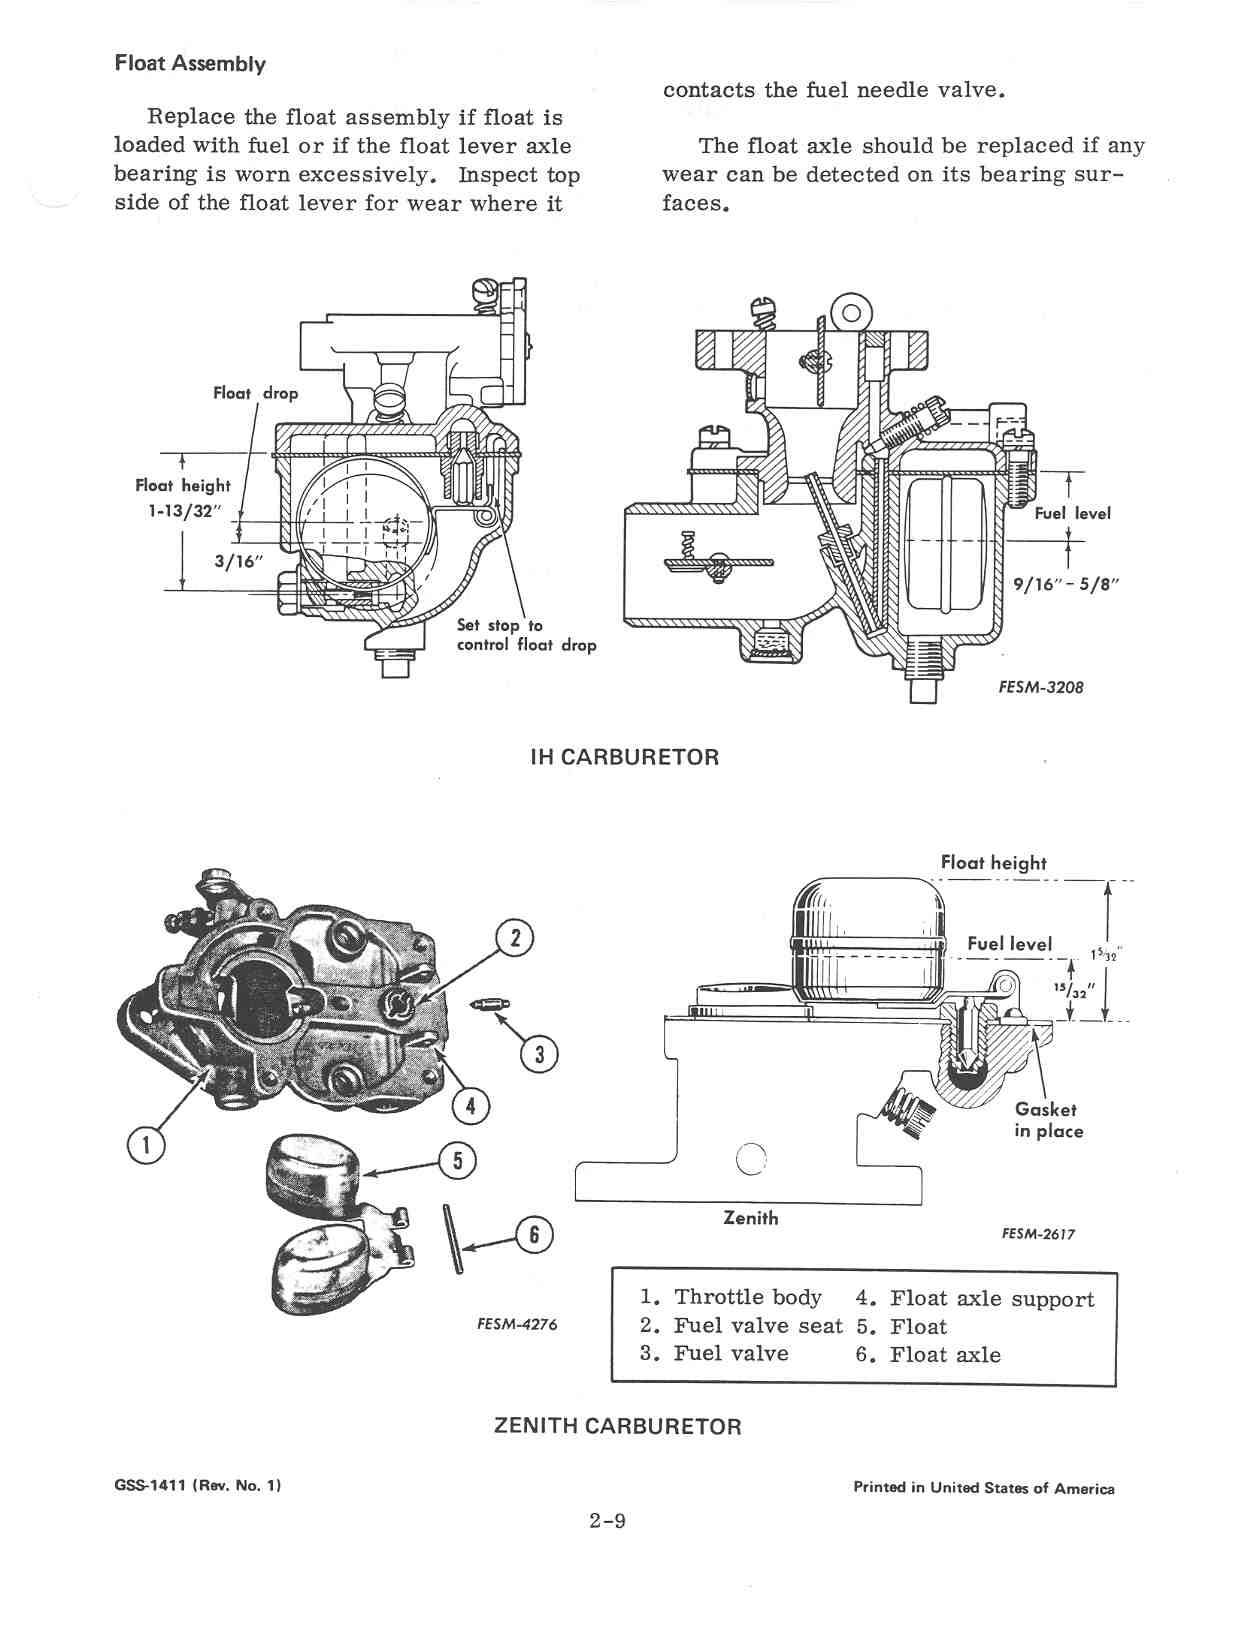 hight resolution of farmall 140 carburetor diagram simple wiring schema farmall 450 carburetor diagram farmall 400 carburetor diagram